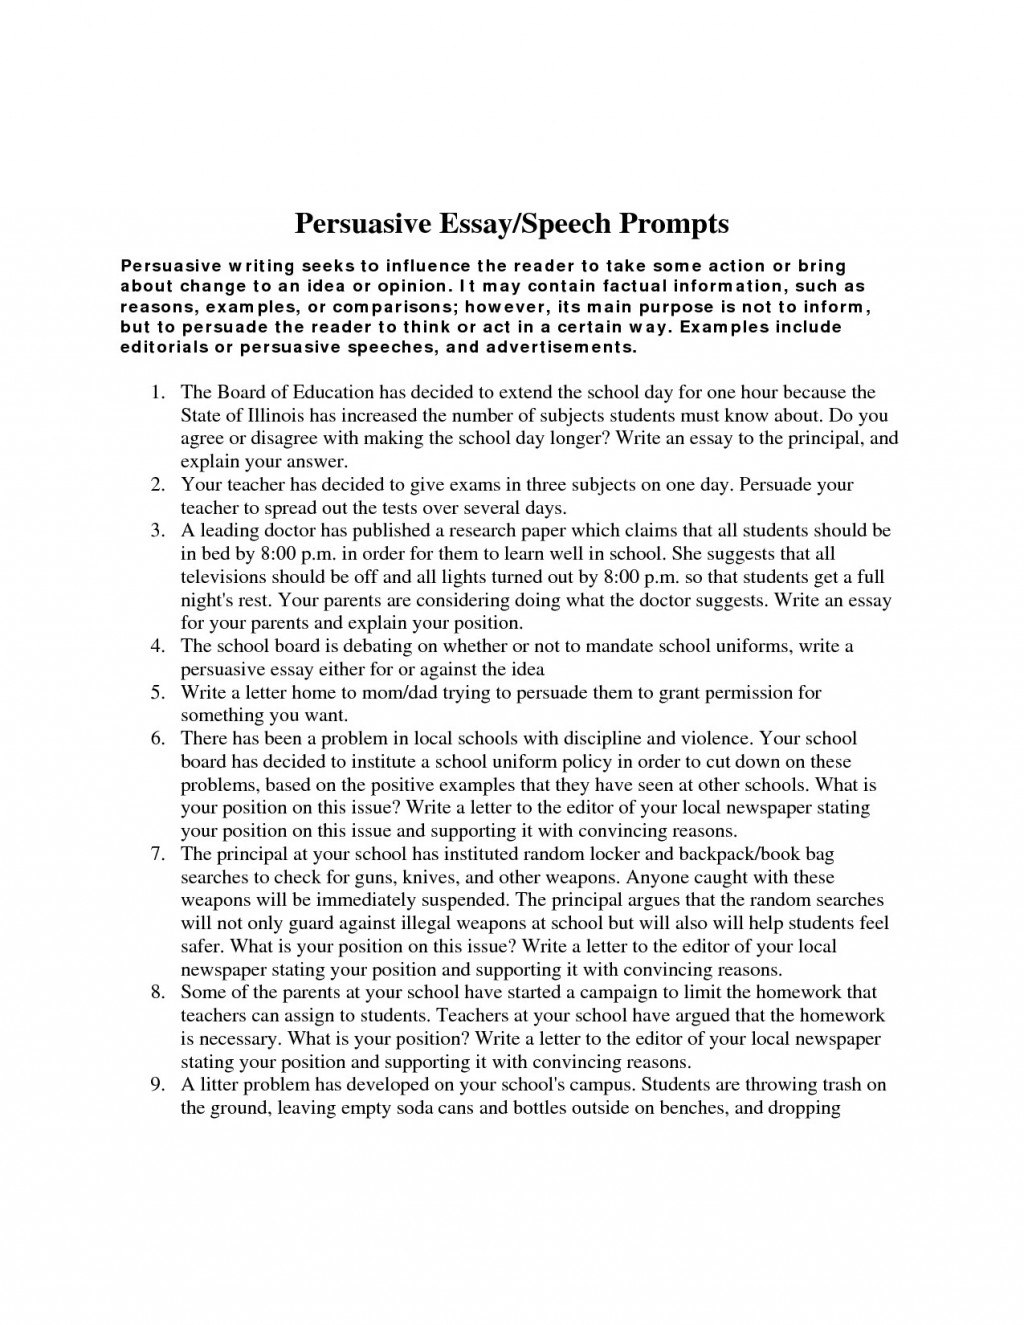 012 Persuasive Essay Prompts Topics For Breathtaking A Best Top 10 Controversial Large